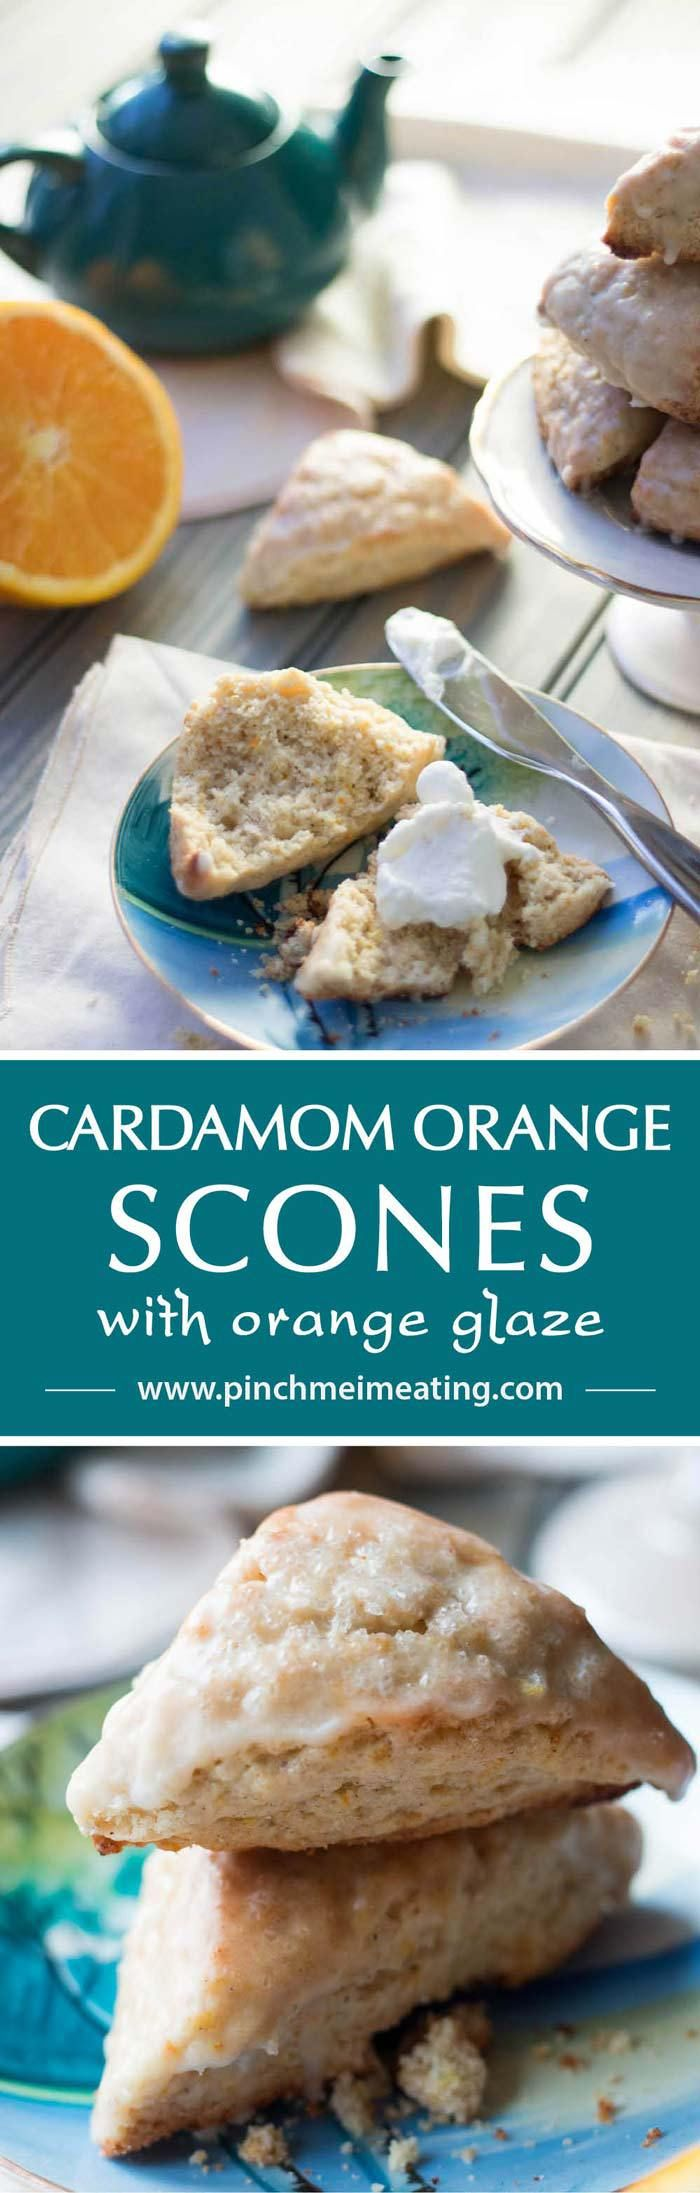 These fragrant cardamom orange scones have a delicate, fresh flavor and just the right crumbly-moist texture — the perfect treat for a bad-weather day.